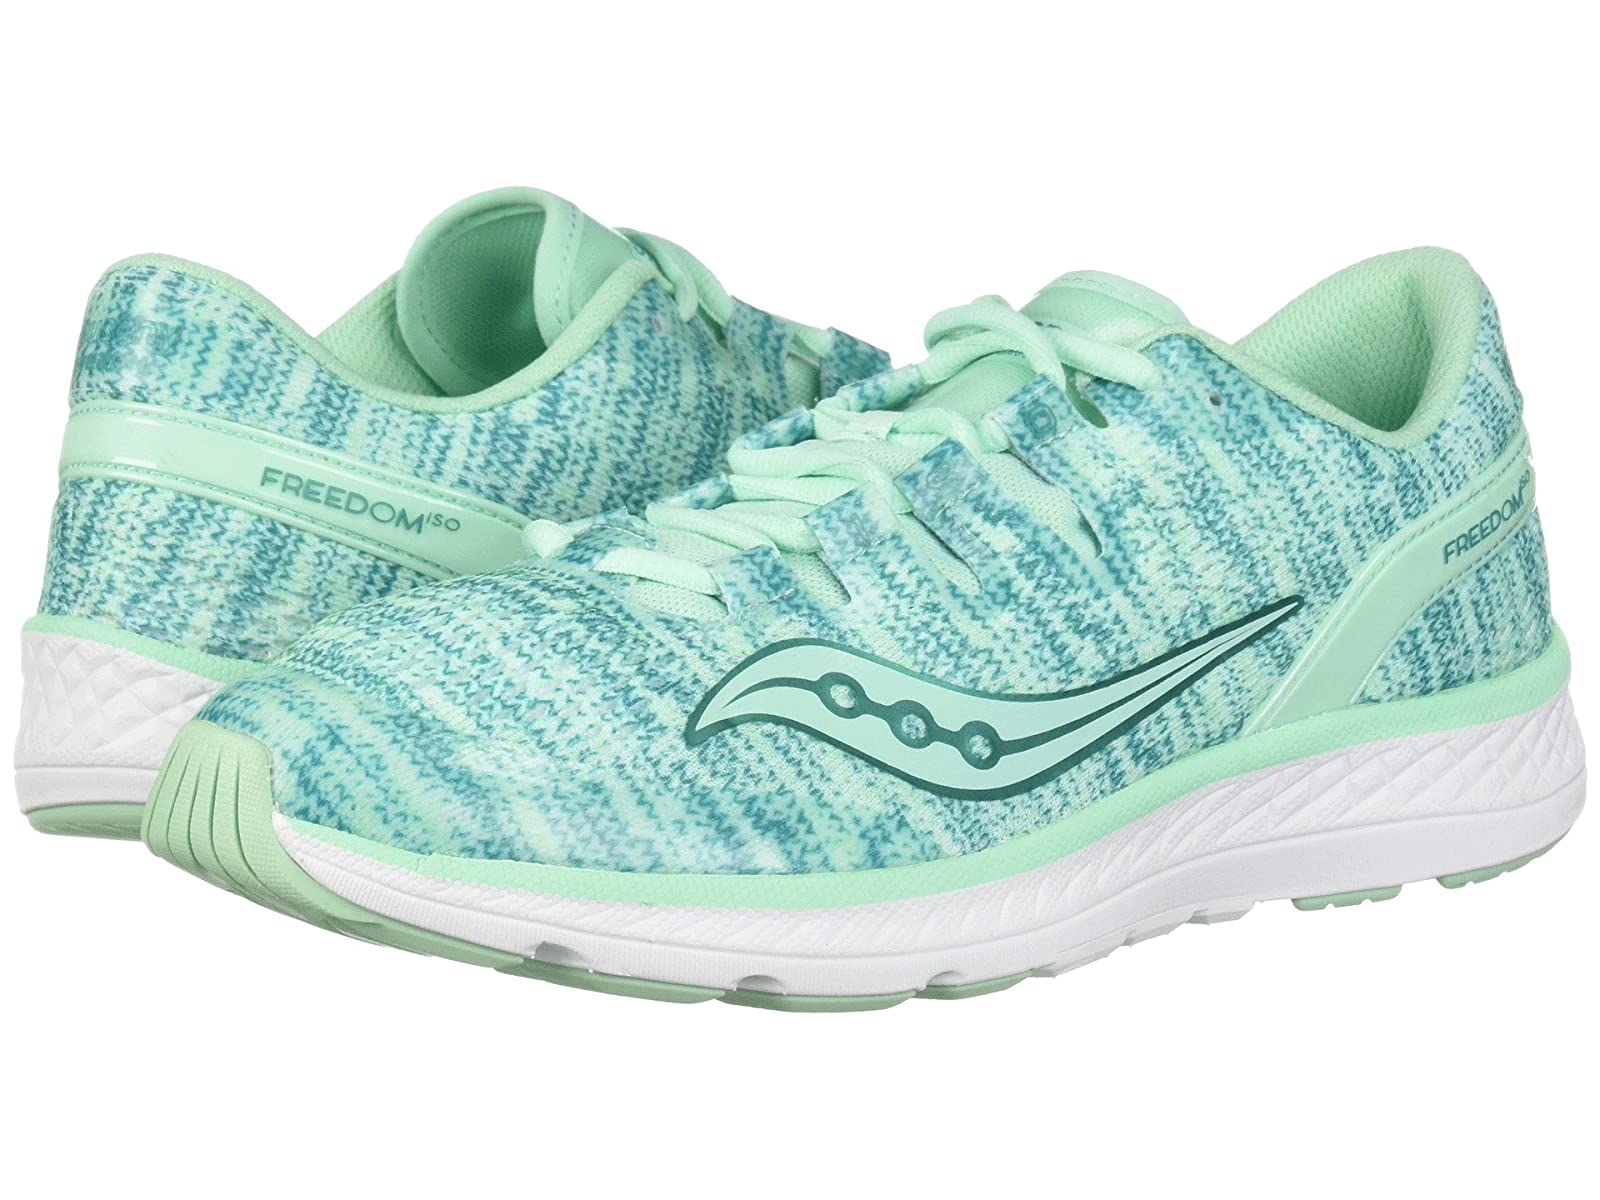 Saucony Kids Freedom ISO (Little Kid/Big Kid)Atmospheric grades have affordable shoes